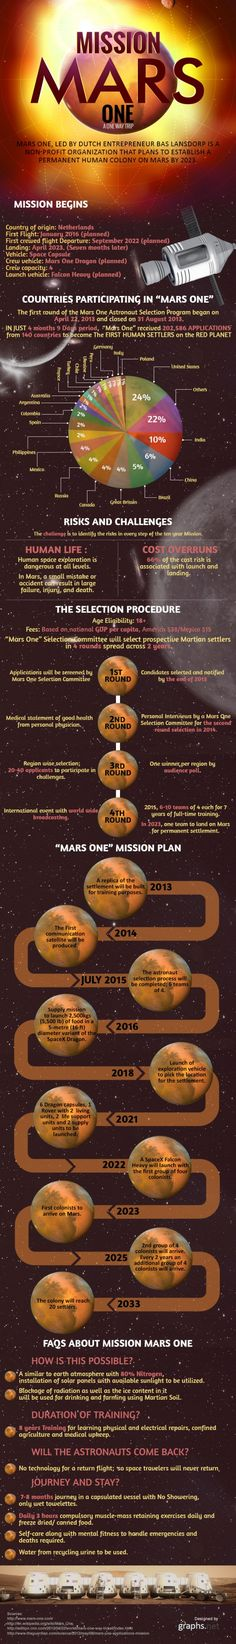 Mars Mission Infographic I was going to apply but knew I wouldn't be selected but I really want to go